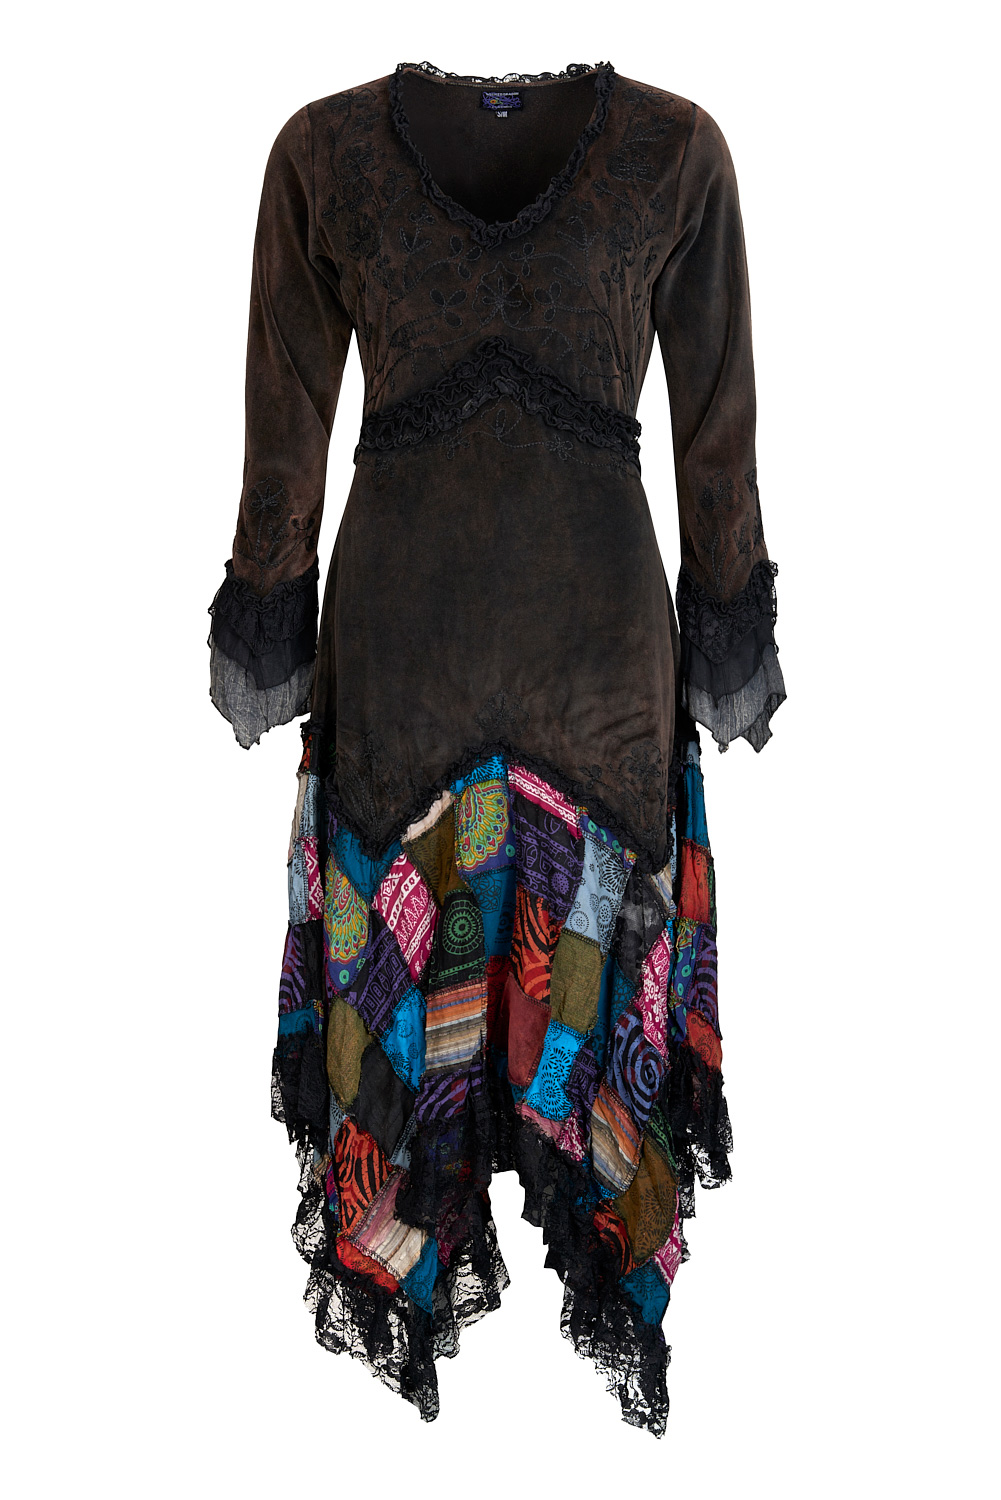 Long velvet boho style dress with patchwork skirt